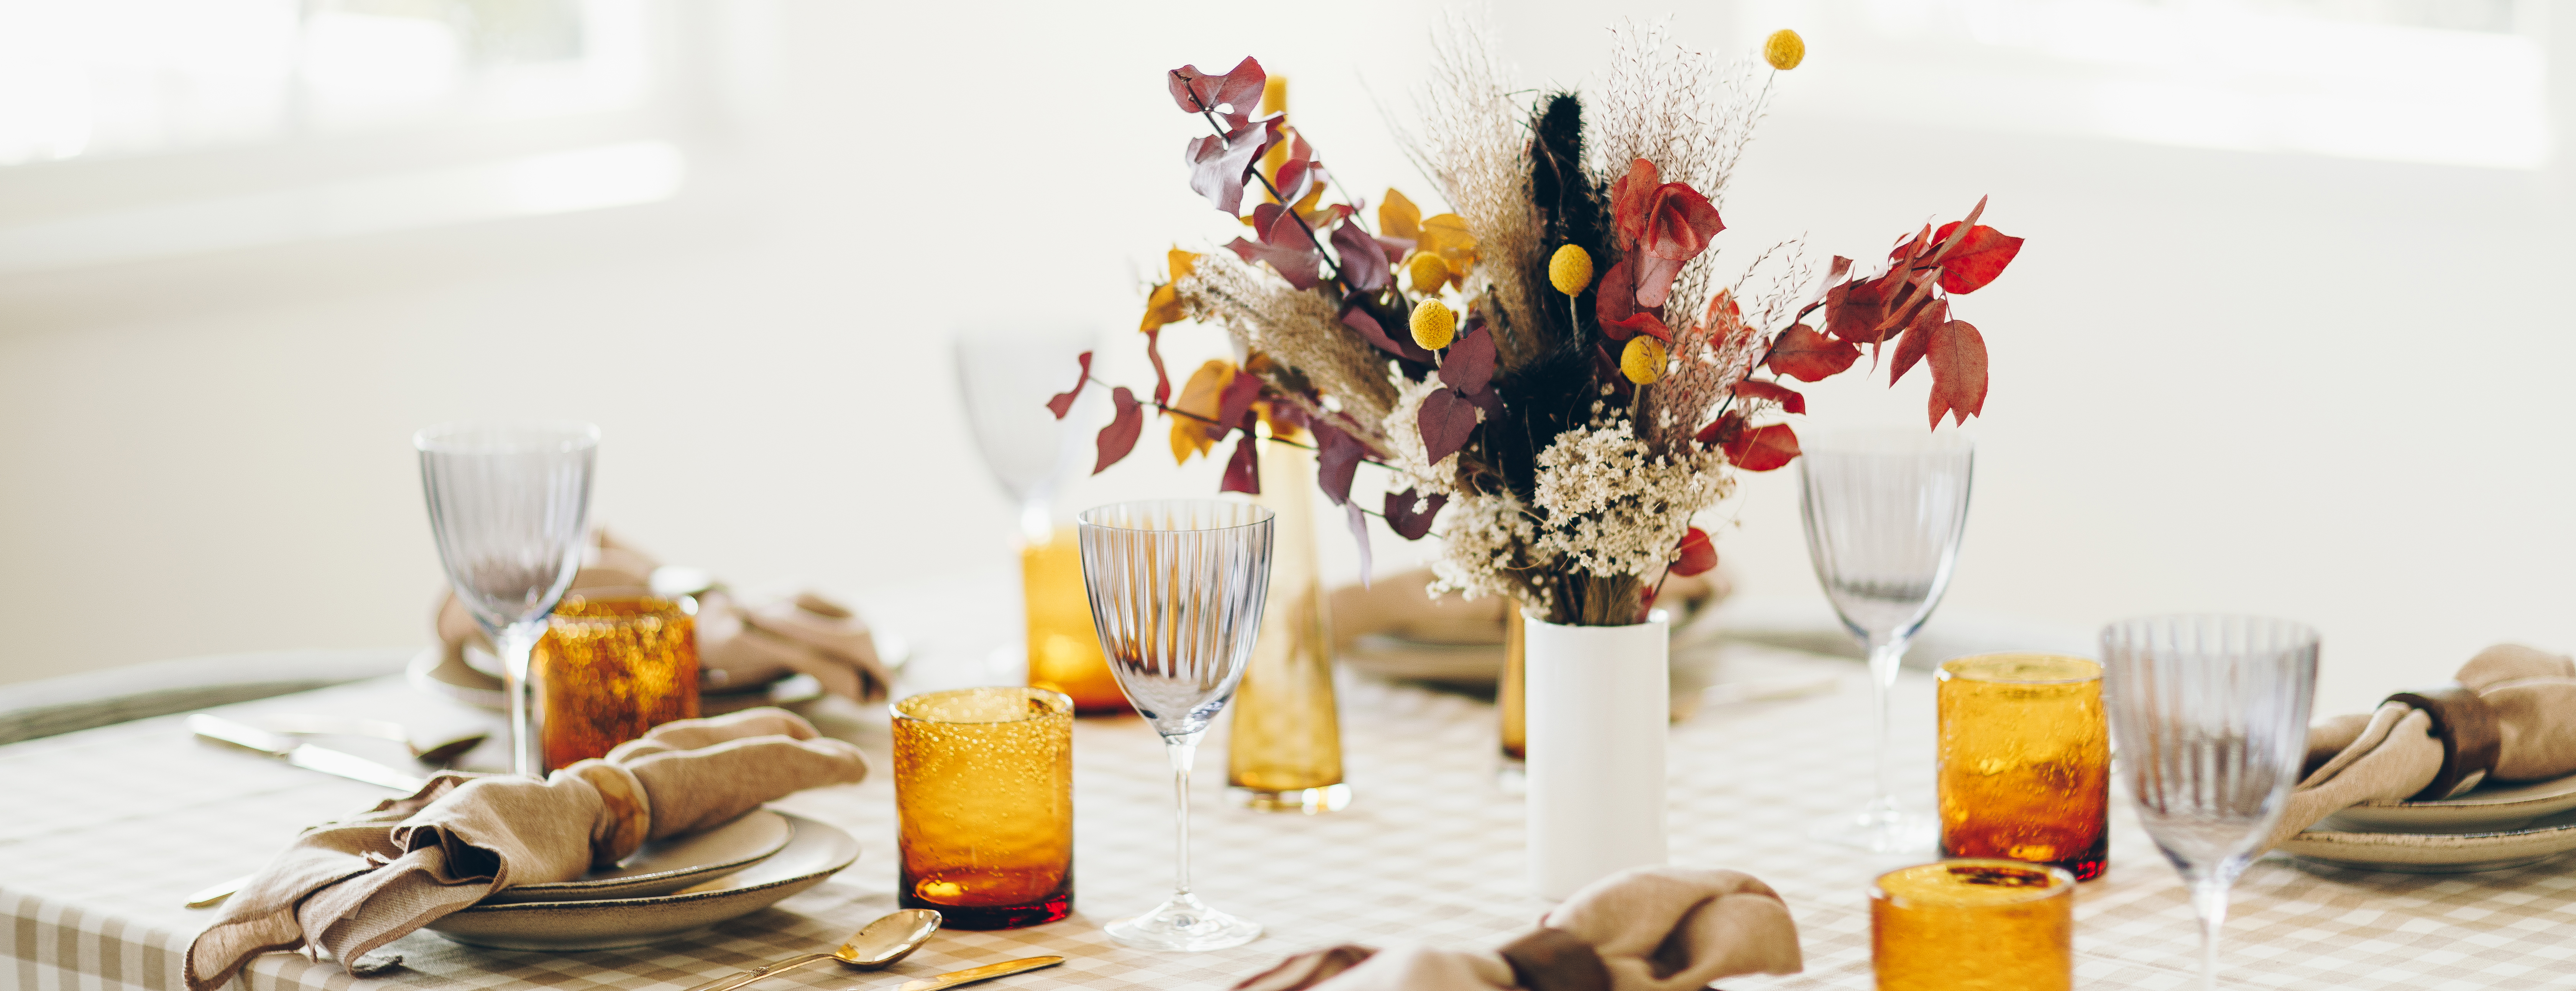 Fall floral centerpiece on a table